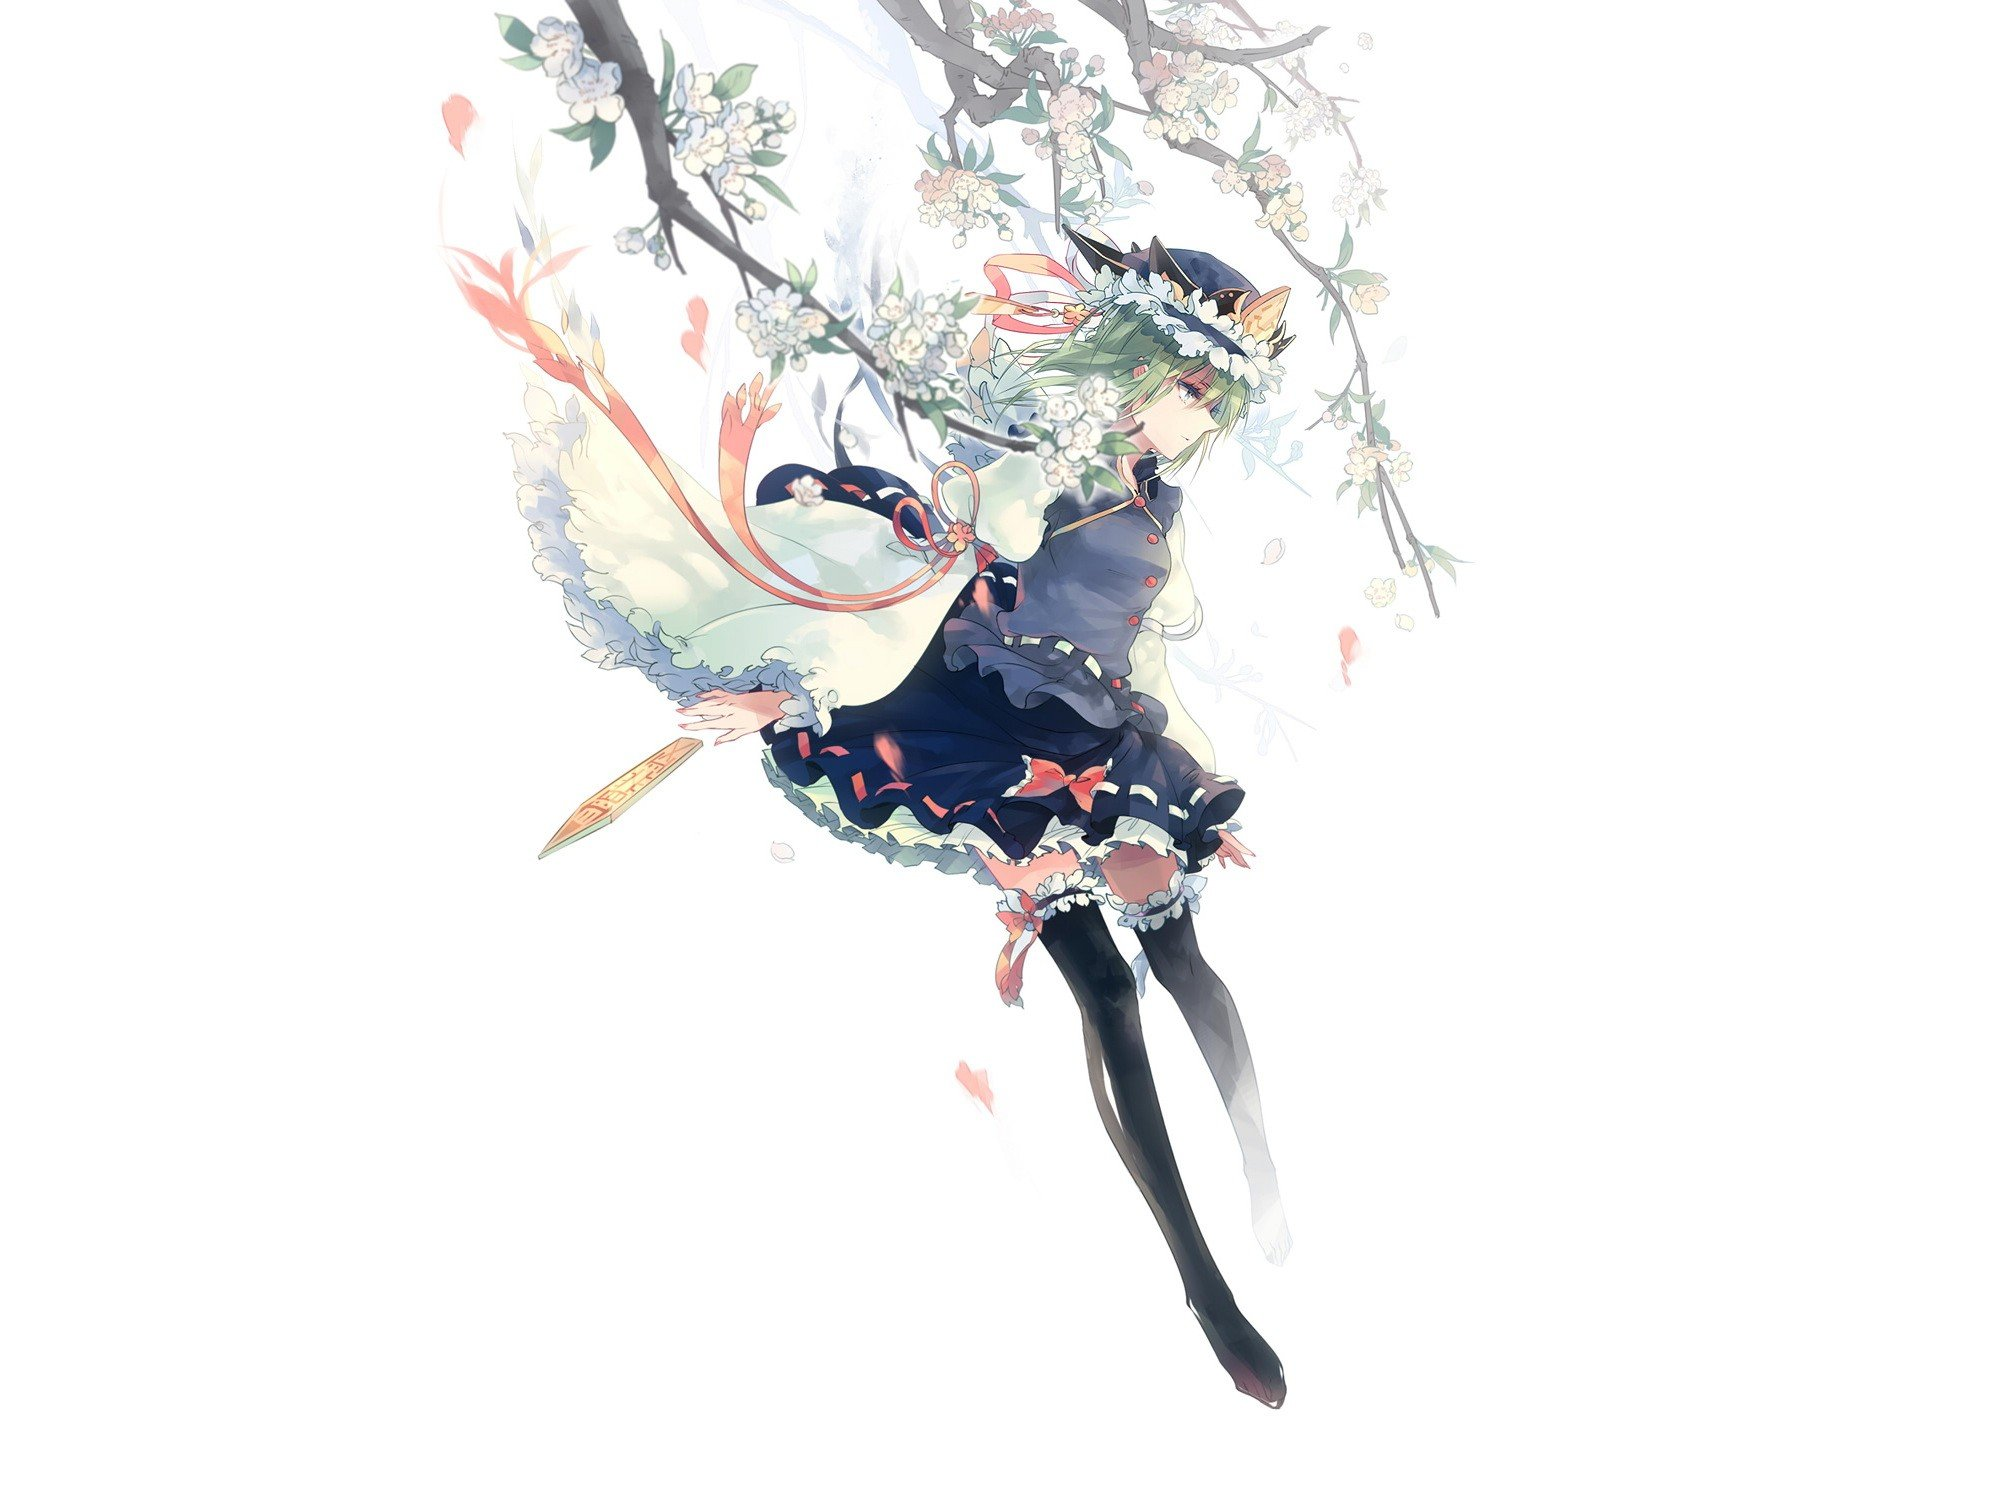 video games Touhou cherry blossoms uniforms skirts ribbons blossoms green eyes short hair thigh highs green hair bows flower petals hats Shikieiki Yamaxanadu simple background branches white background